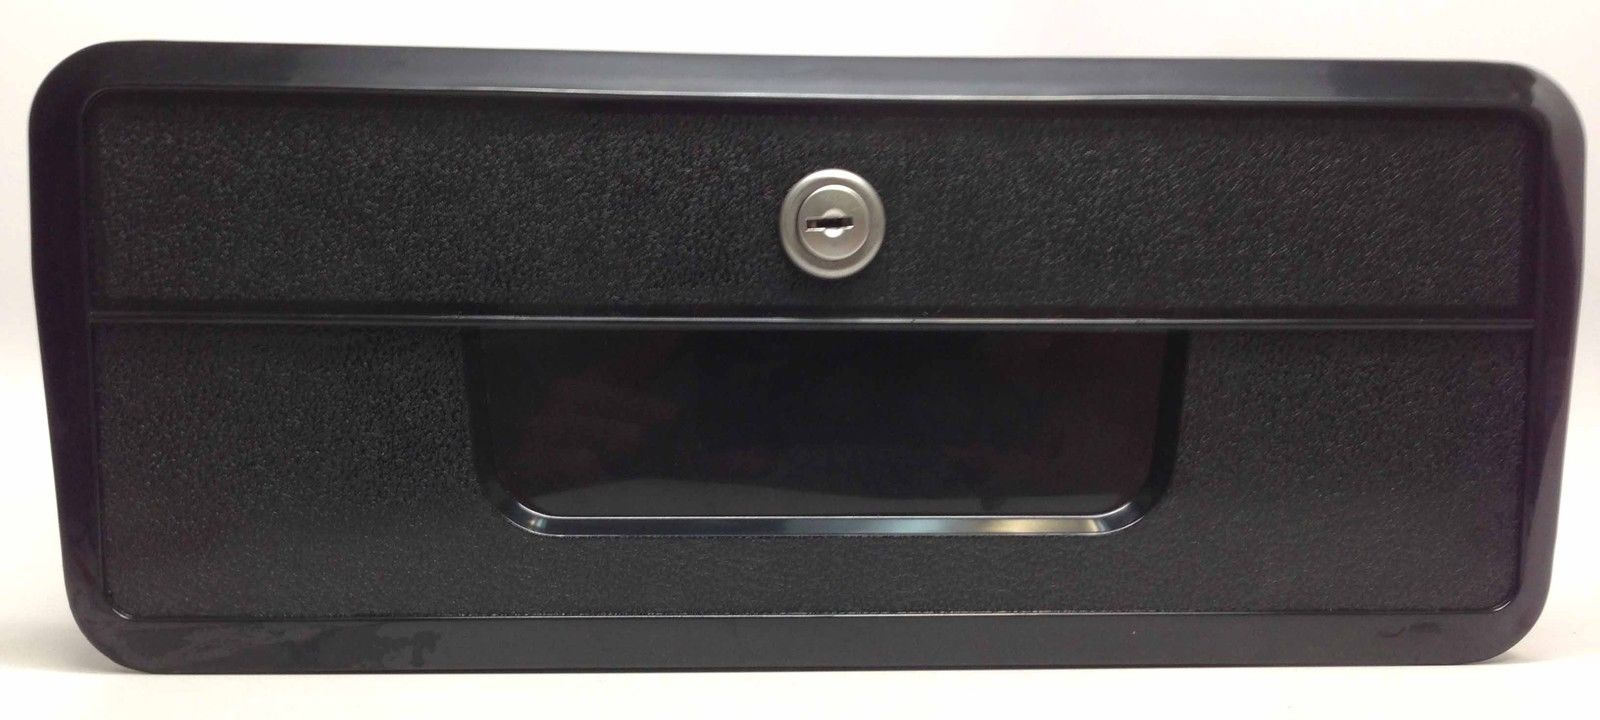 Marine Boat Abs Locking Plastic Glove Box Storage